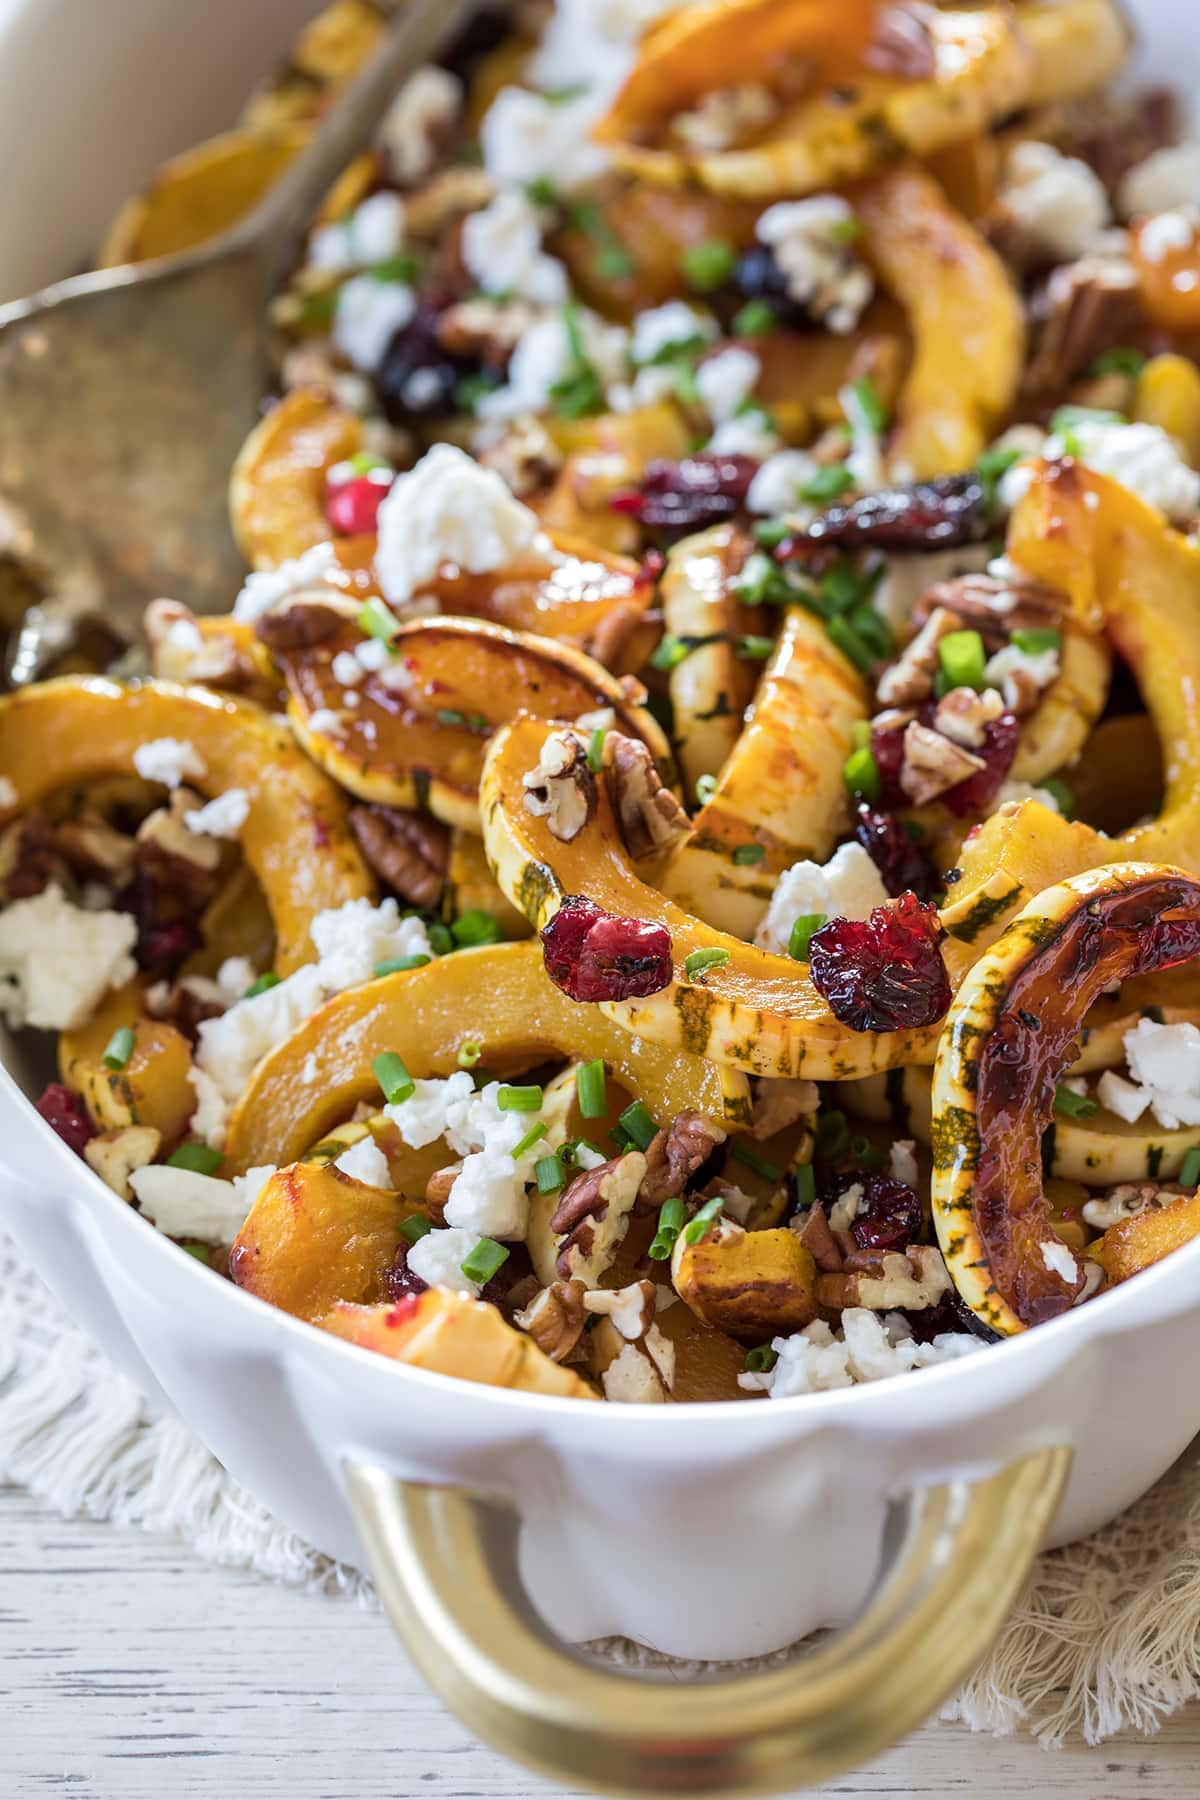 Roasted Delicata Squash with Cranberries and Feta makes a perfect Thanksgiving side dish #thanksgiving #delicata #squash #healthy